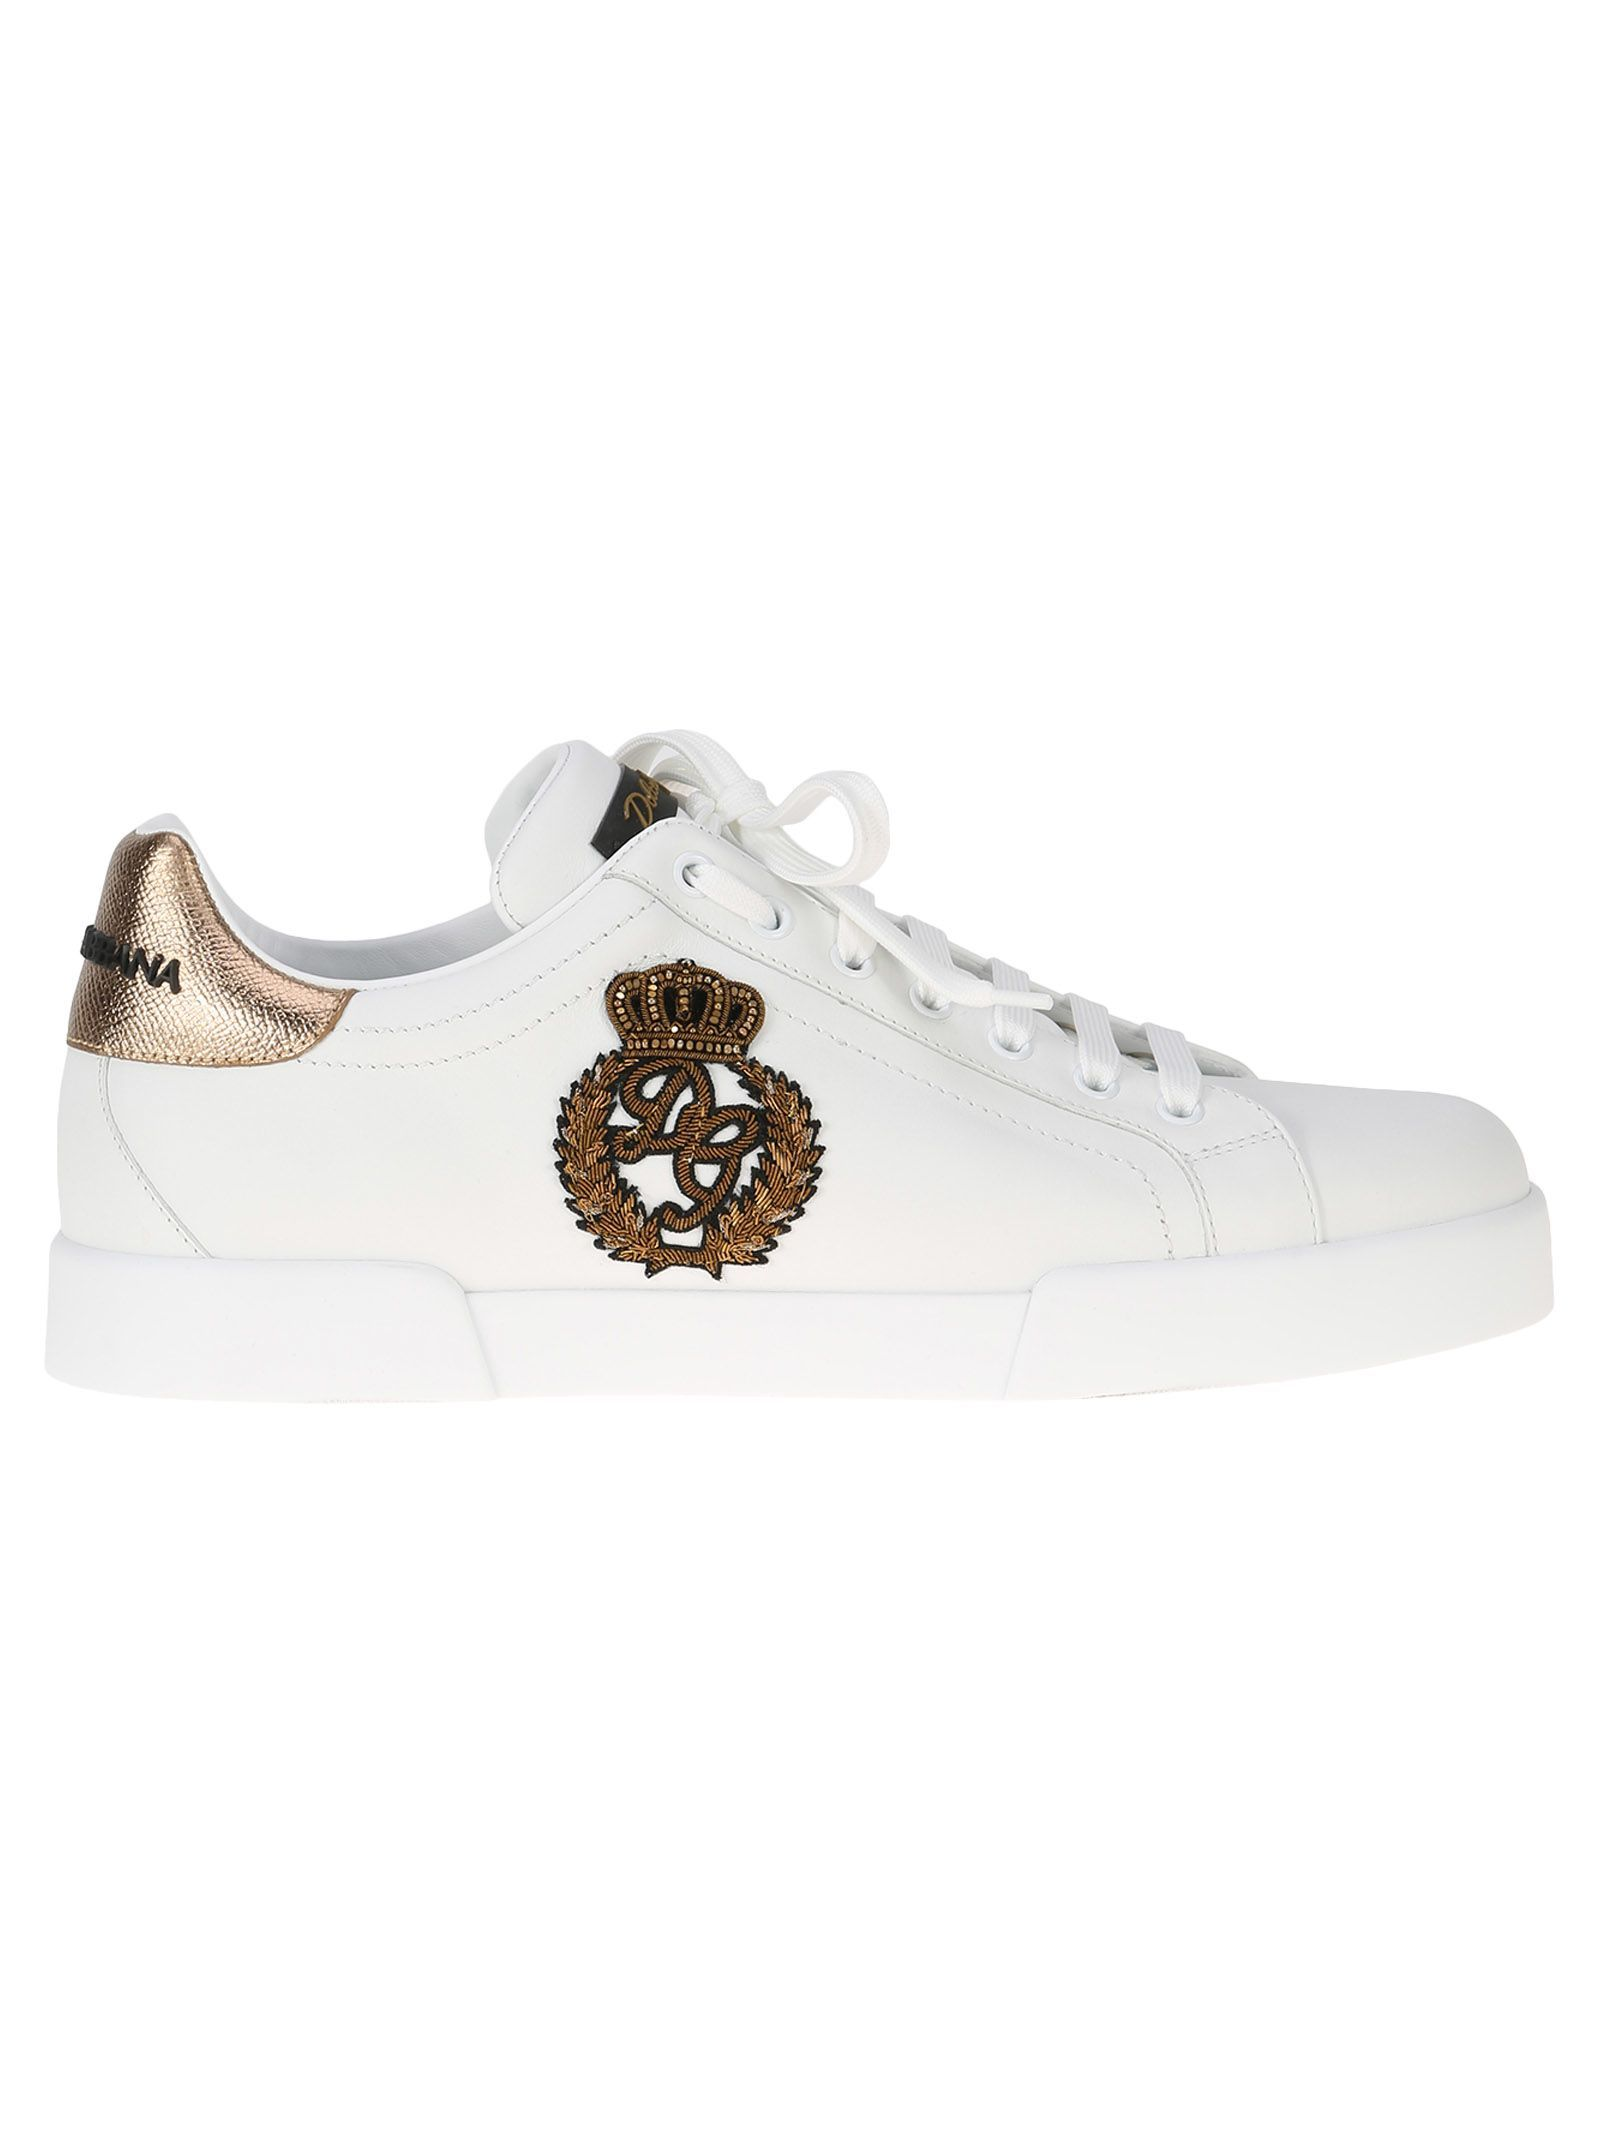 6a343d050454 DOLCE   GABBANA LONDON SNEAKERS.  dolcegabbana  shoes